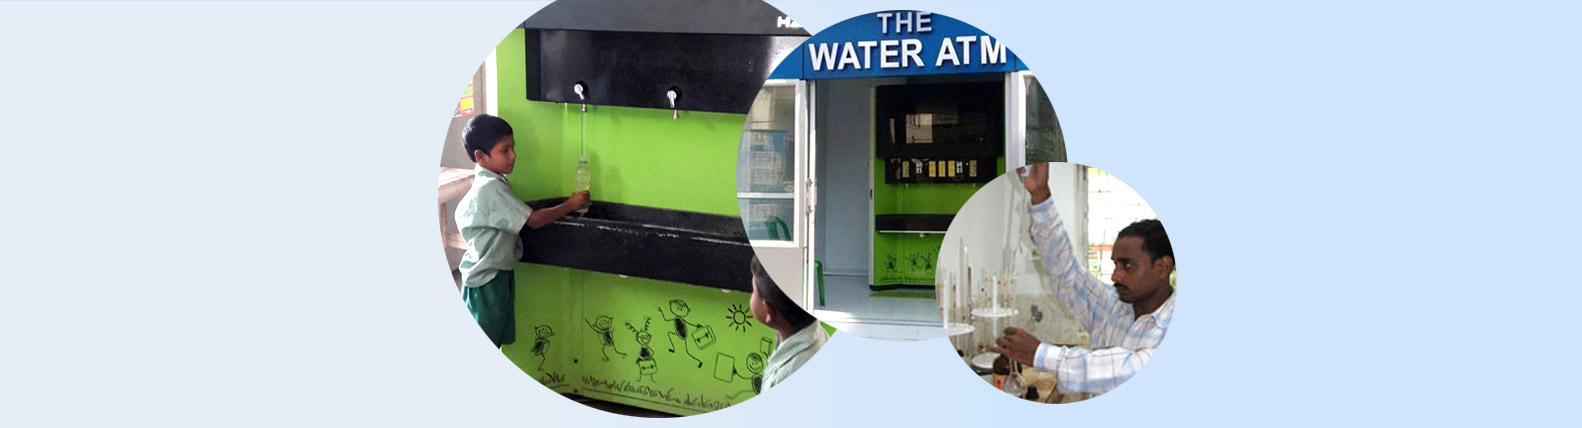 School students collecting drinking water from Water ATMs installed near schools & water sample test